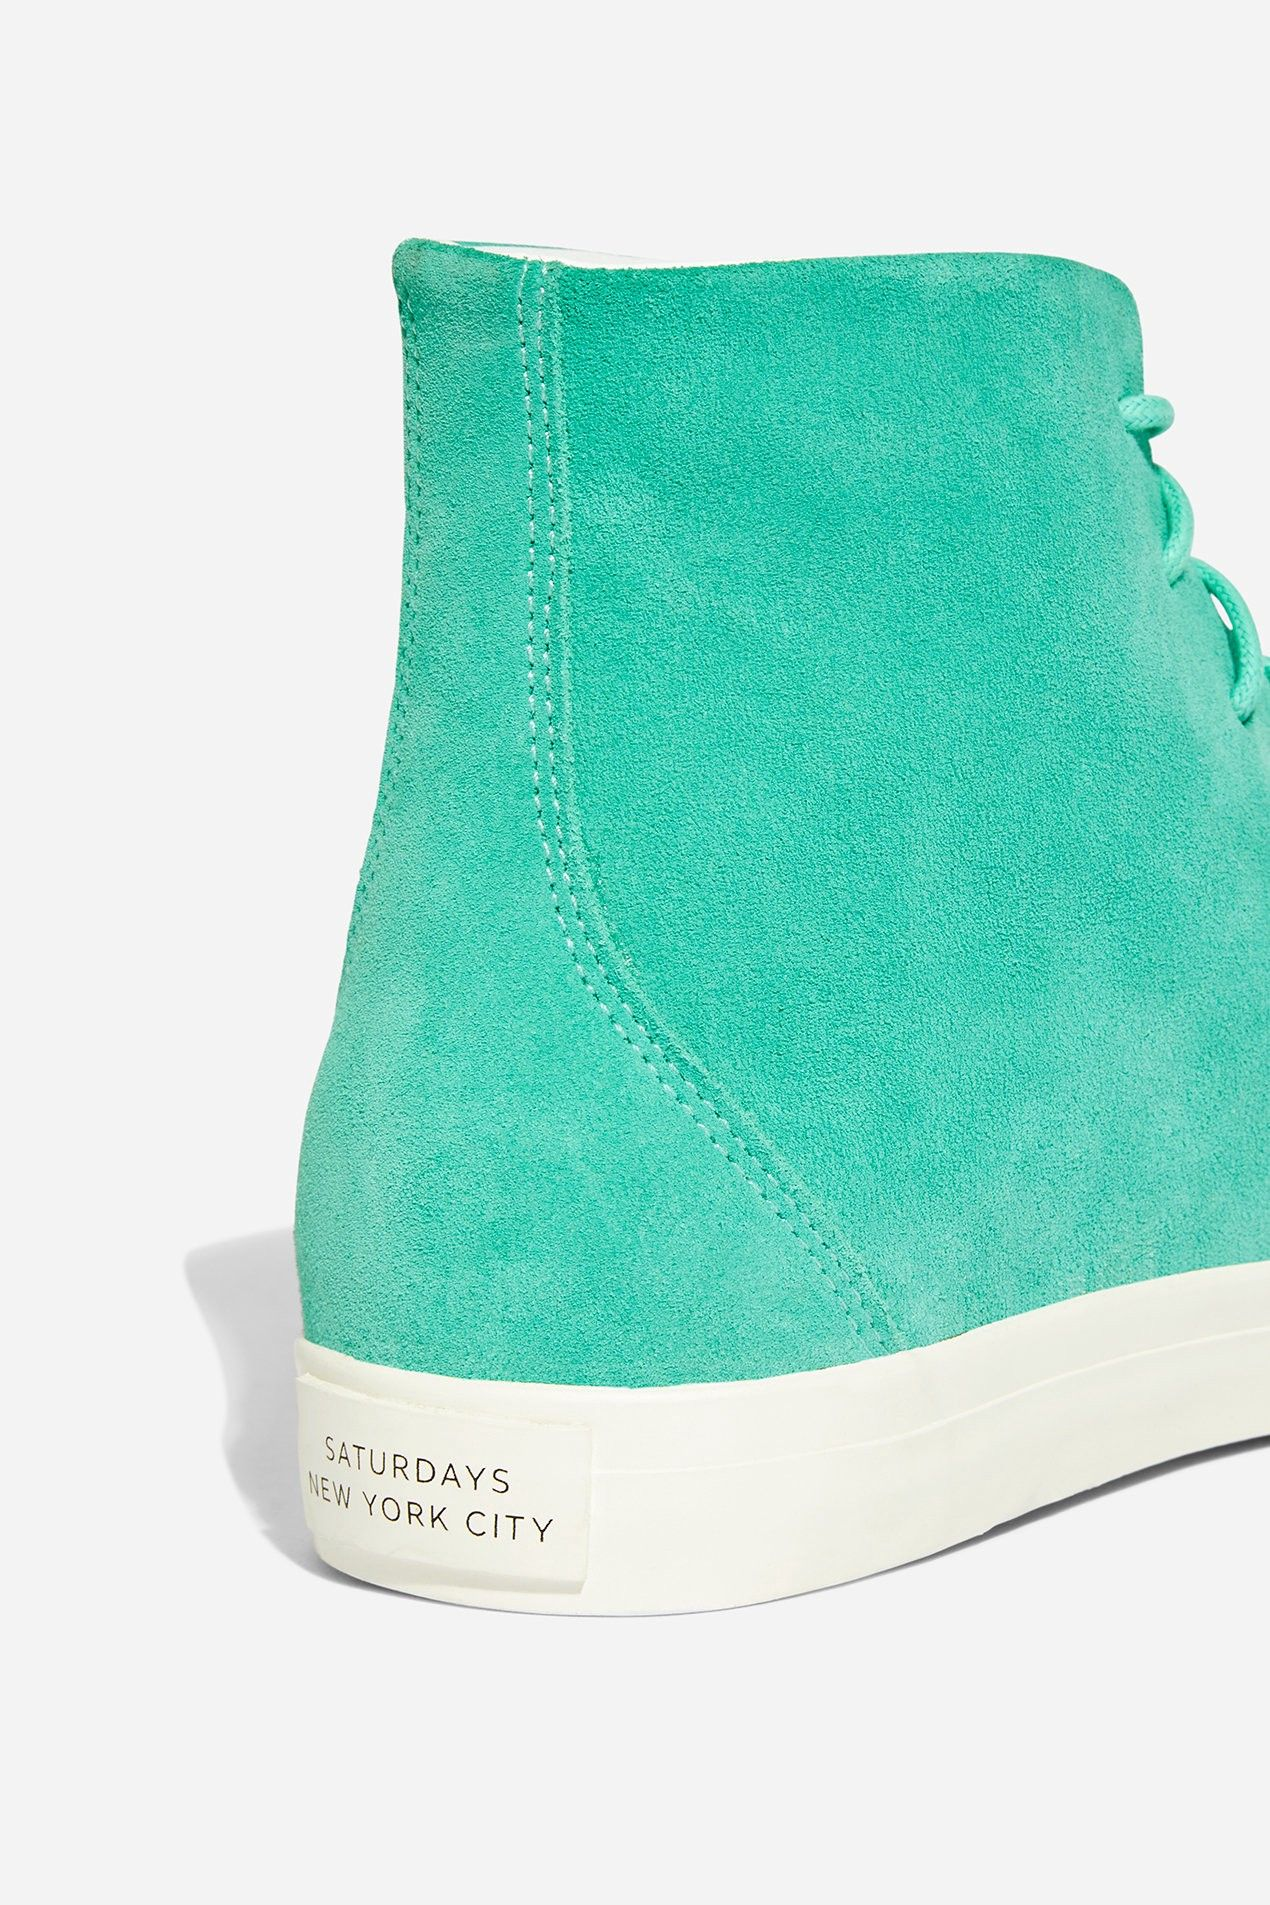 9b686c2b753 Saturdays Nyc Mike High Suede Sneaker Seafoam Green - 8.5 | Products ...